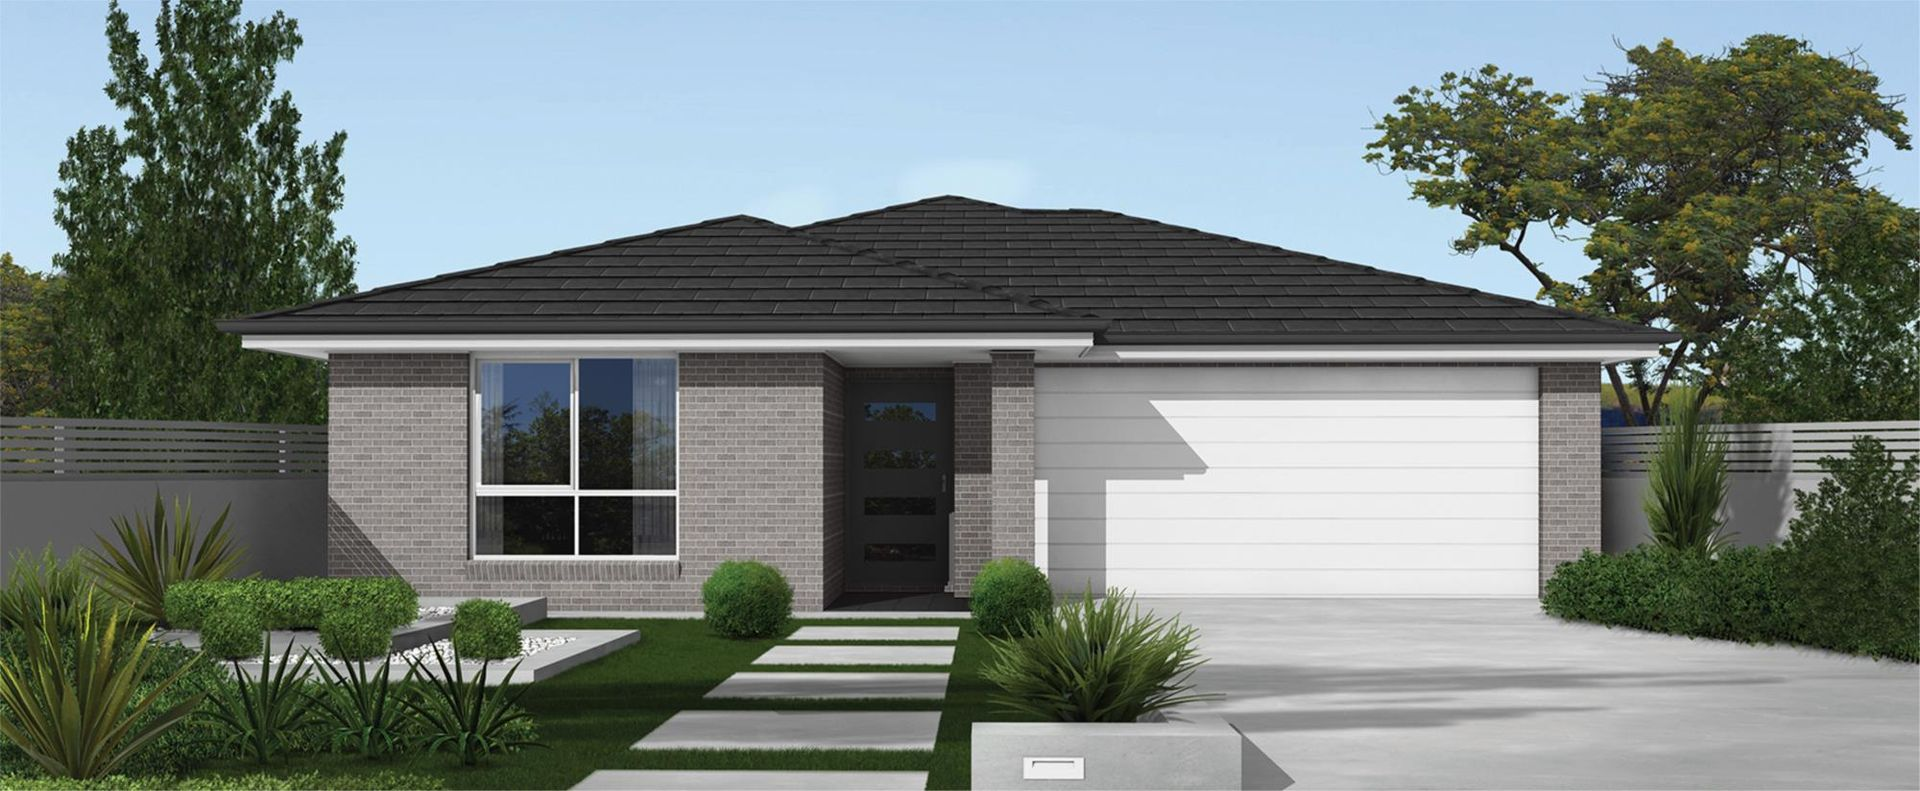 515 Proposed Road, Spring Farm NSW 2570, Image 0